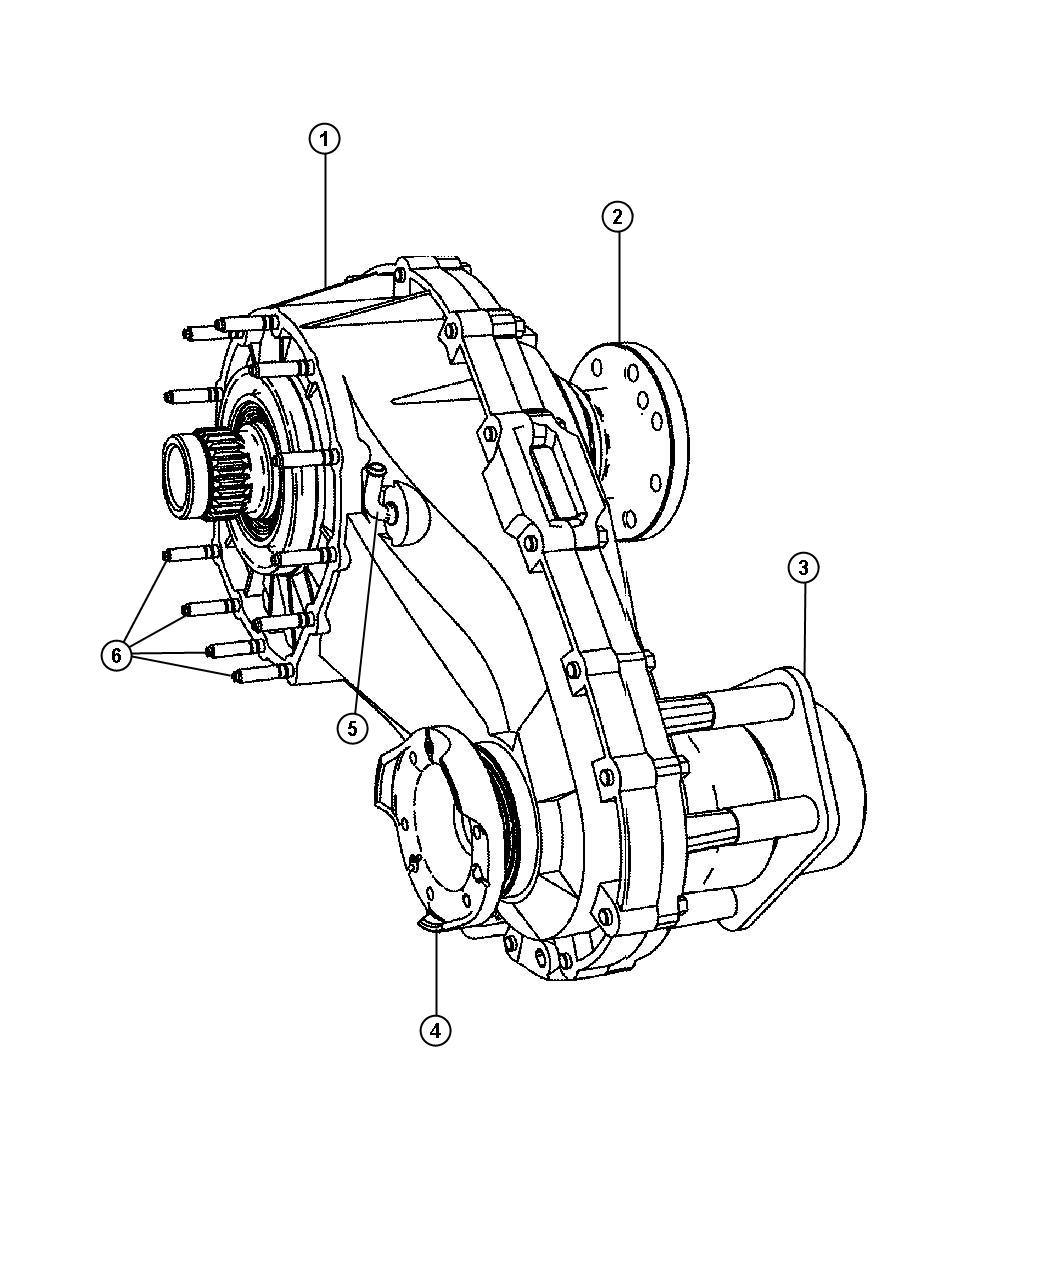 Jeep Commander Transfer case. Nvg140. See note. Dhz